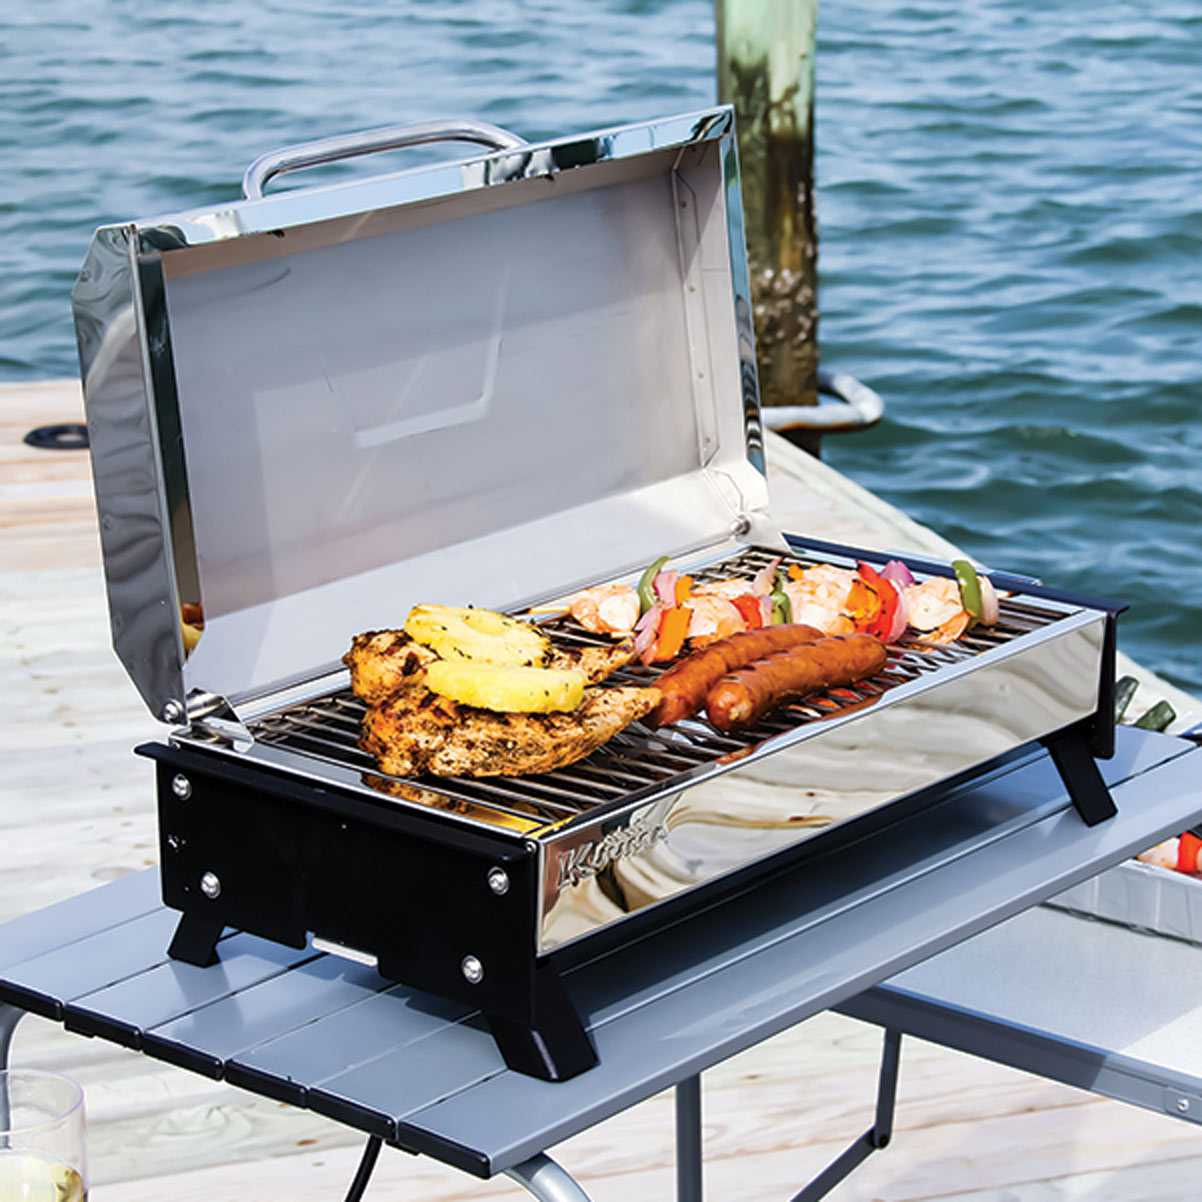 Kuuma Profile 150 Barbecue Gas Grill 58121 Stainless Steel